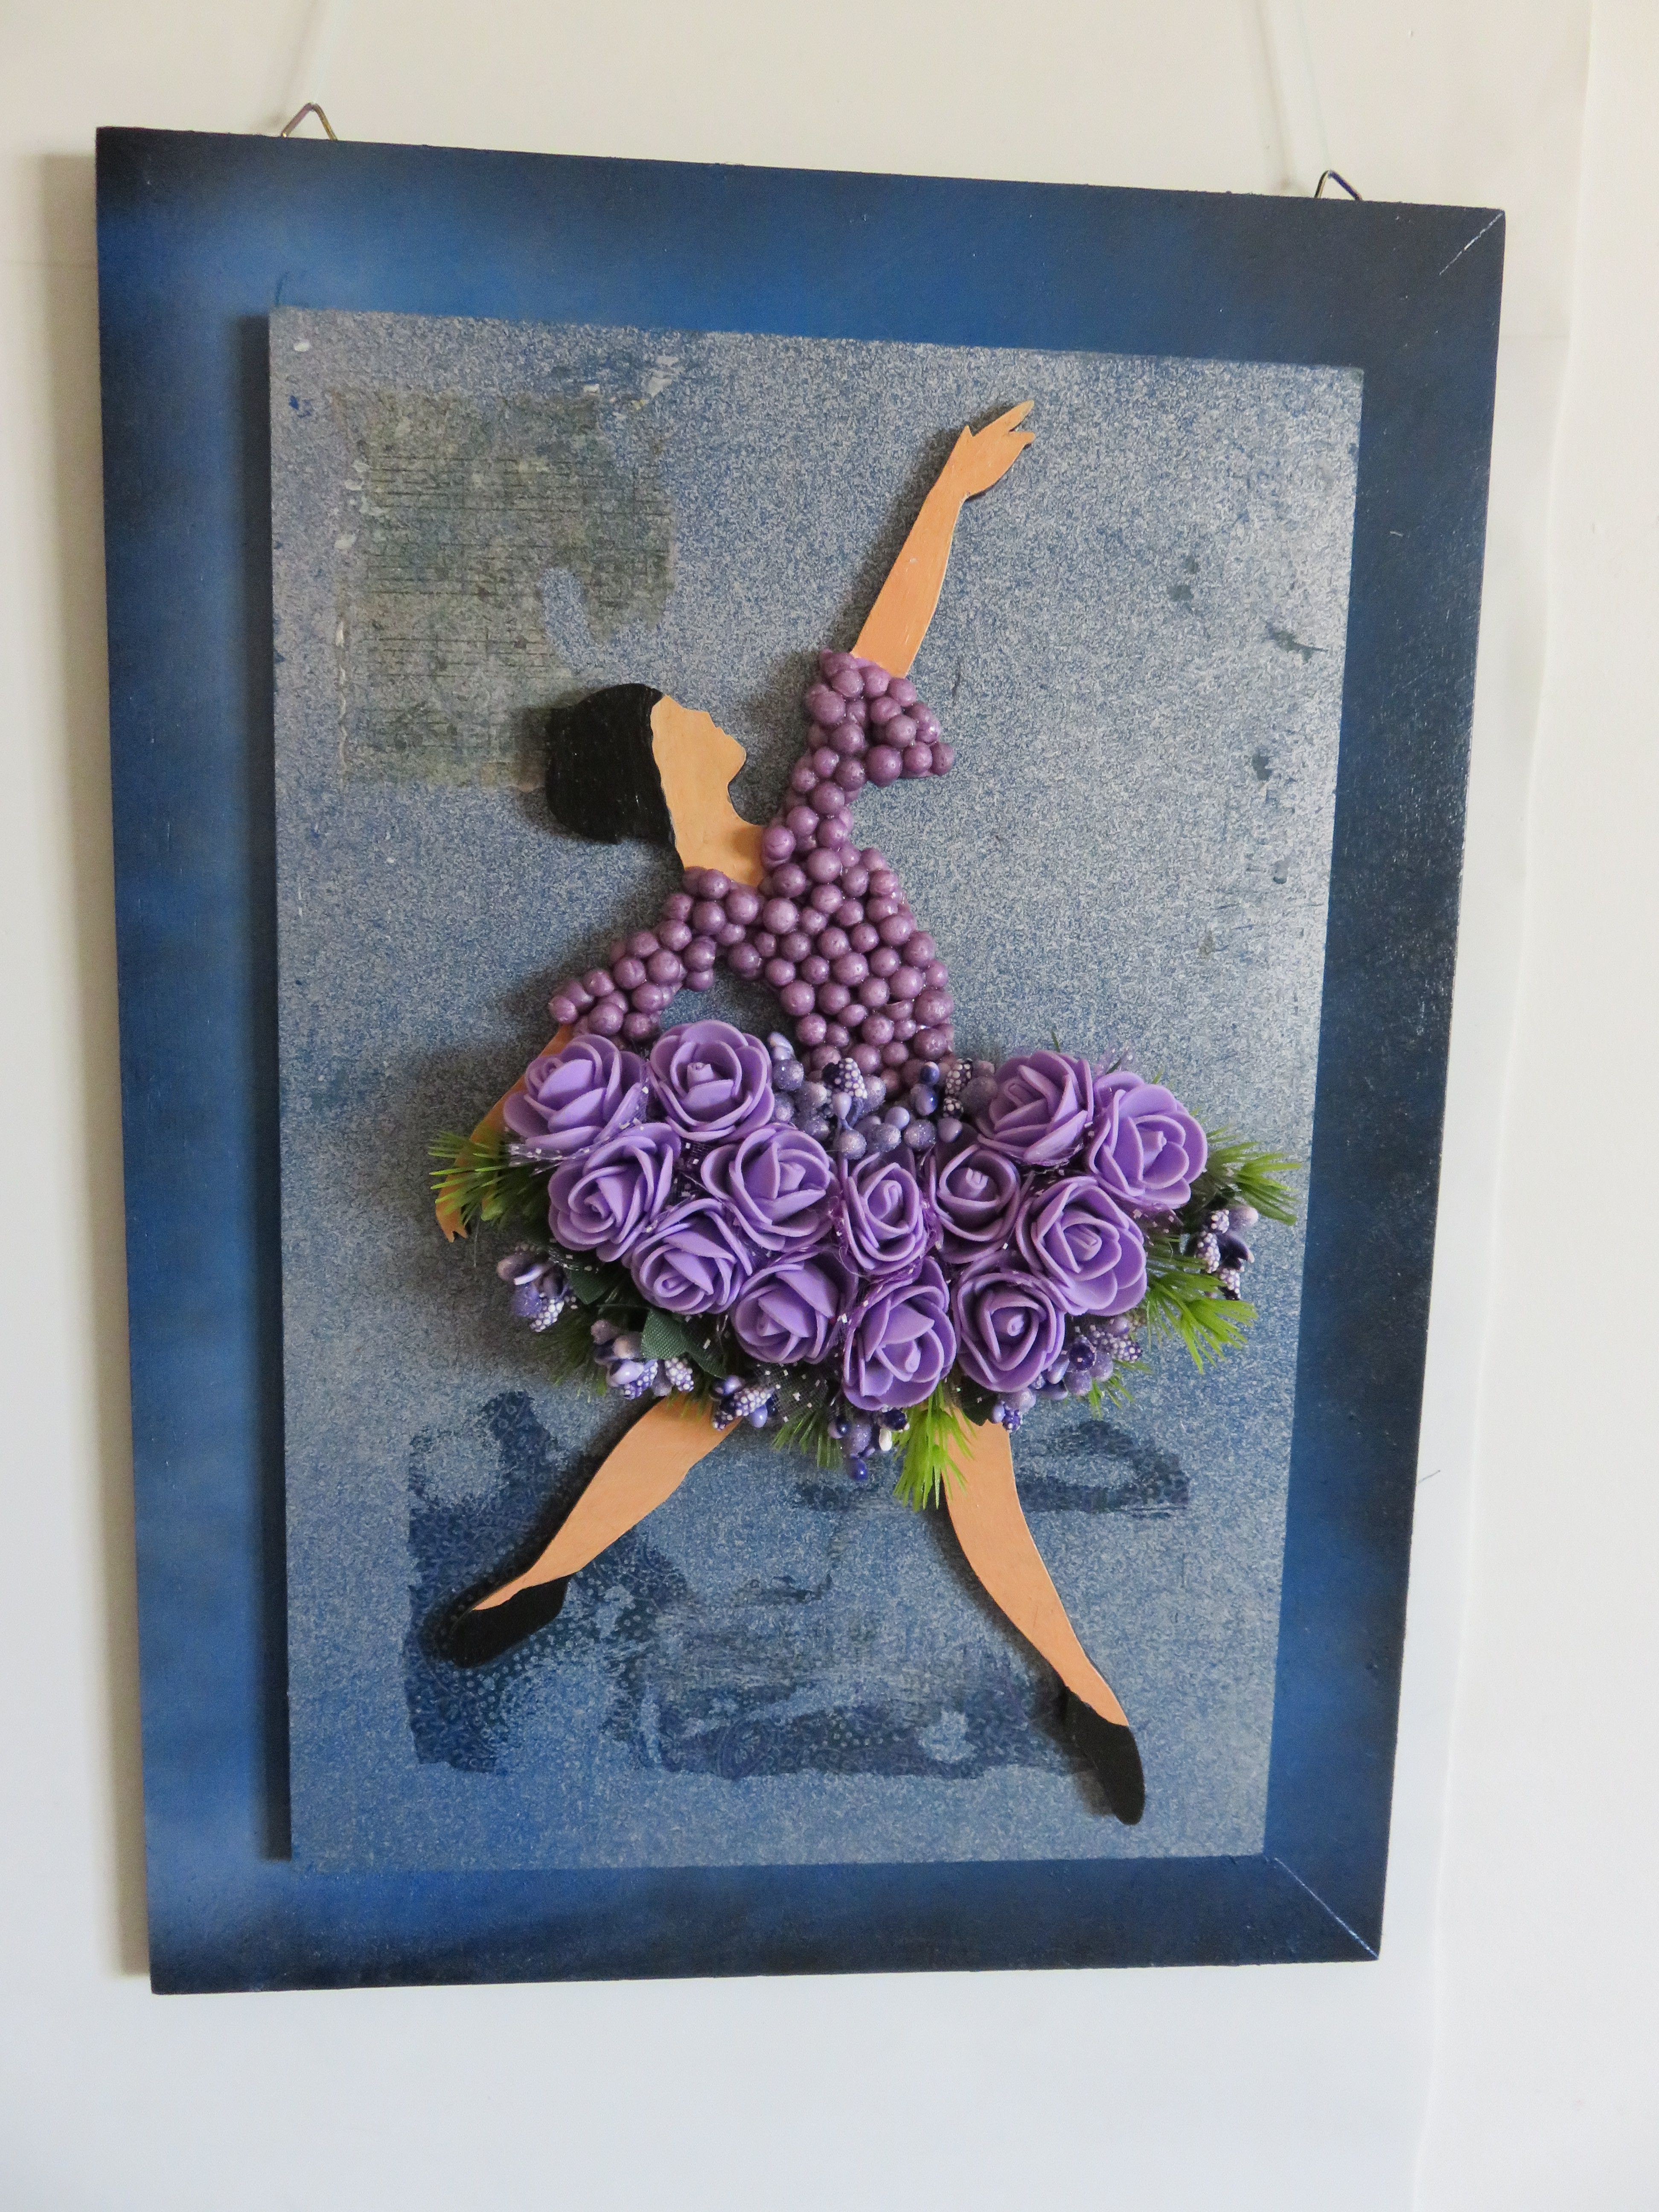 gift art unique decor purple for girls home décor living pink room wall hanging ballerina hangings homecoming ballet dancers ballerinas dancing